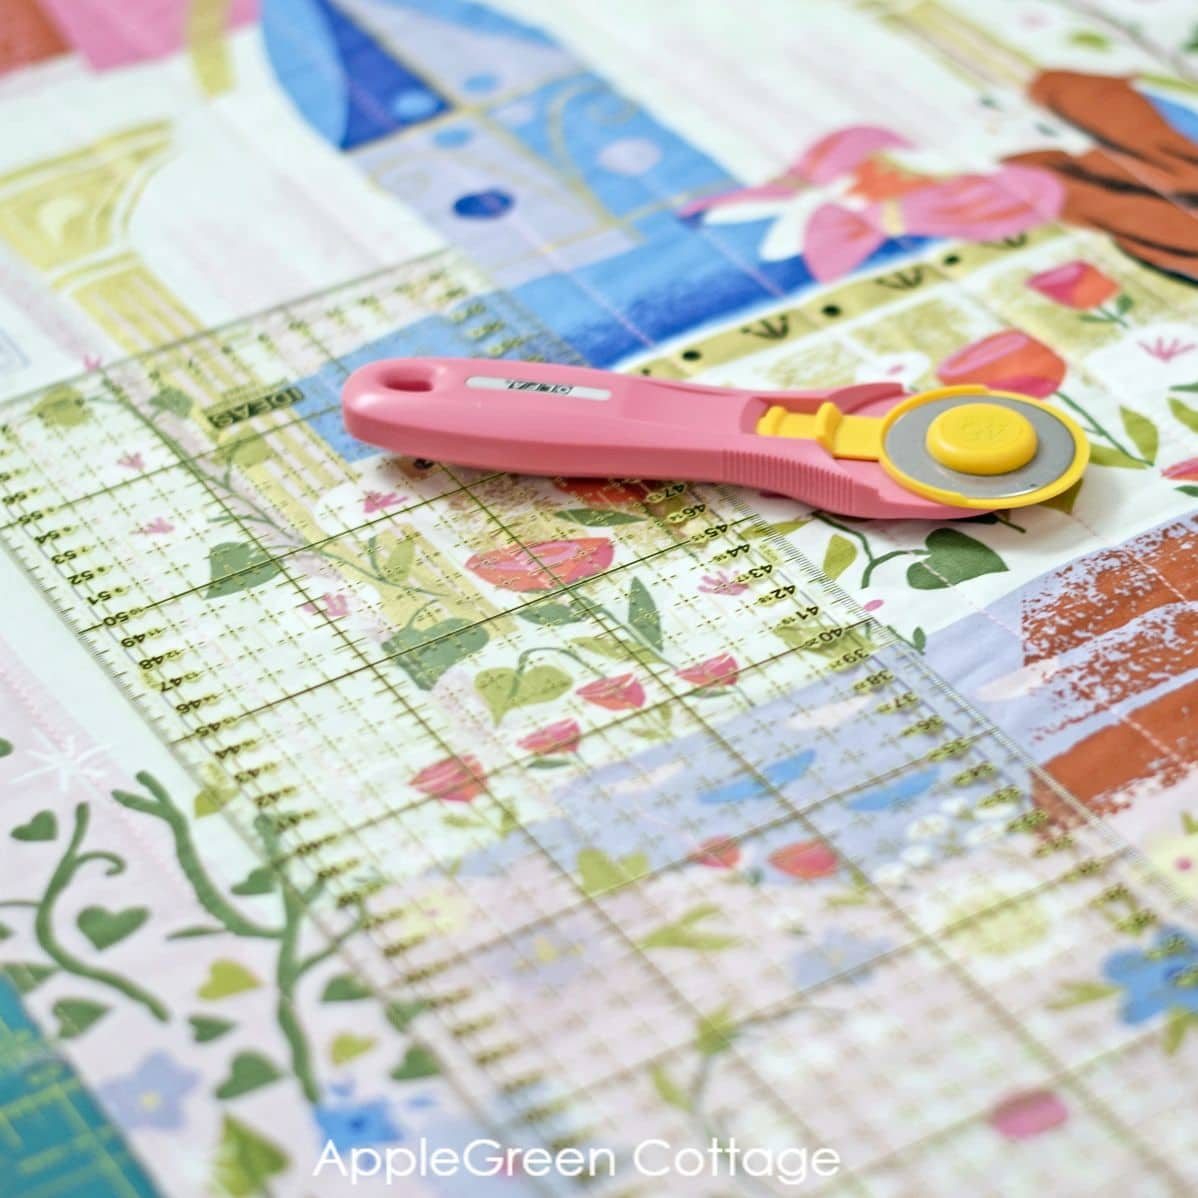 quilted fabric panel and squared up with a pink rotary cutter and quilting ruler